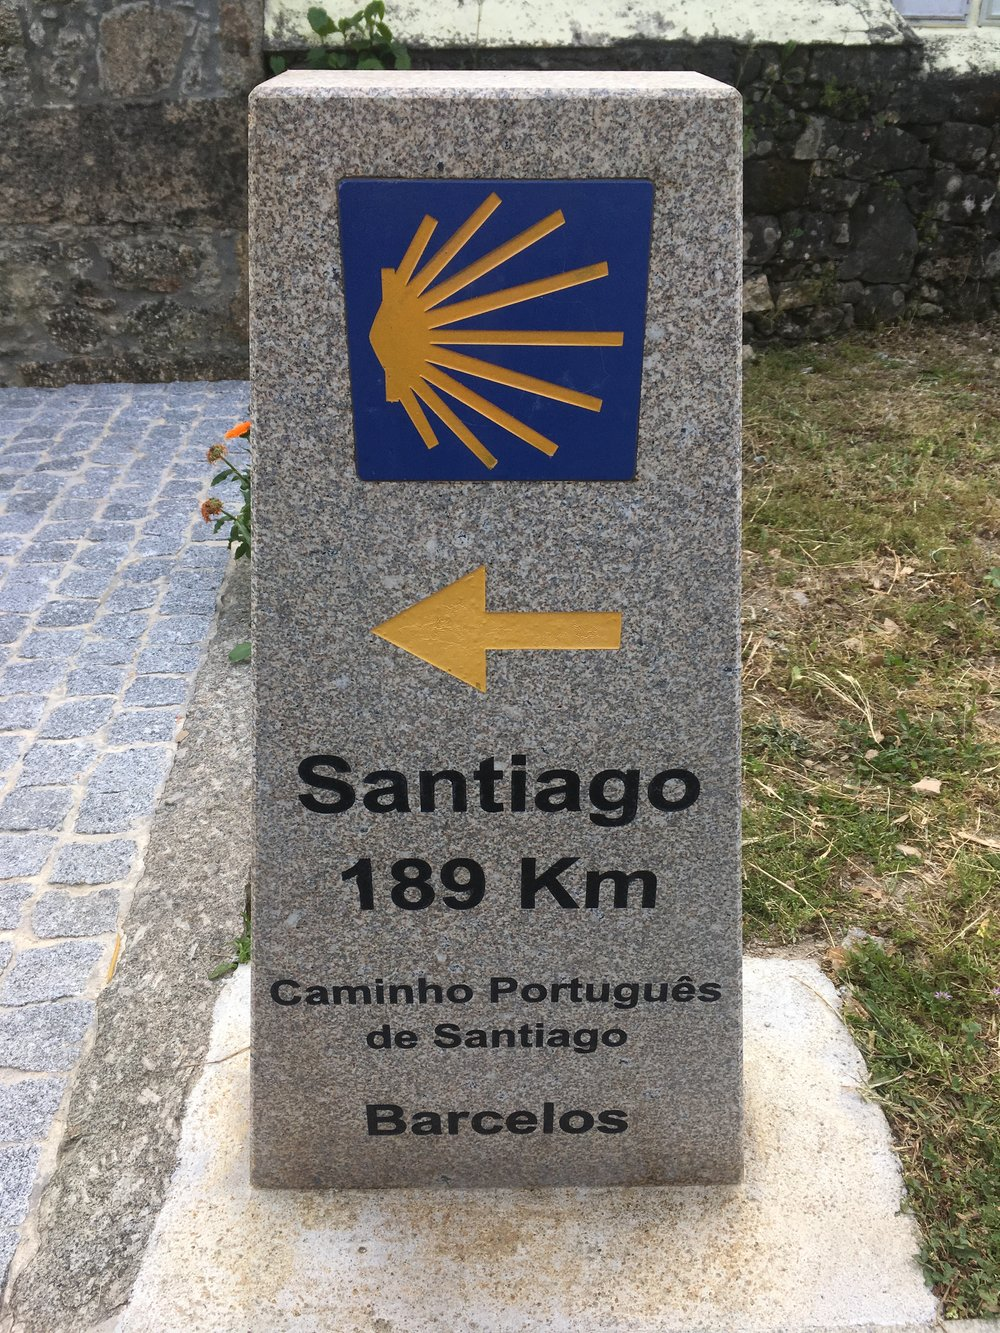 We got excited when it was less than 200km to Santiago de Compostela